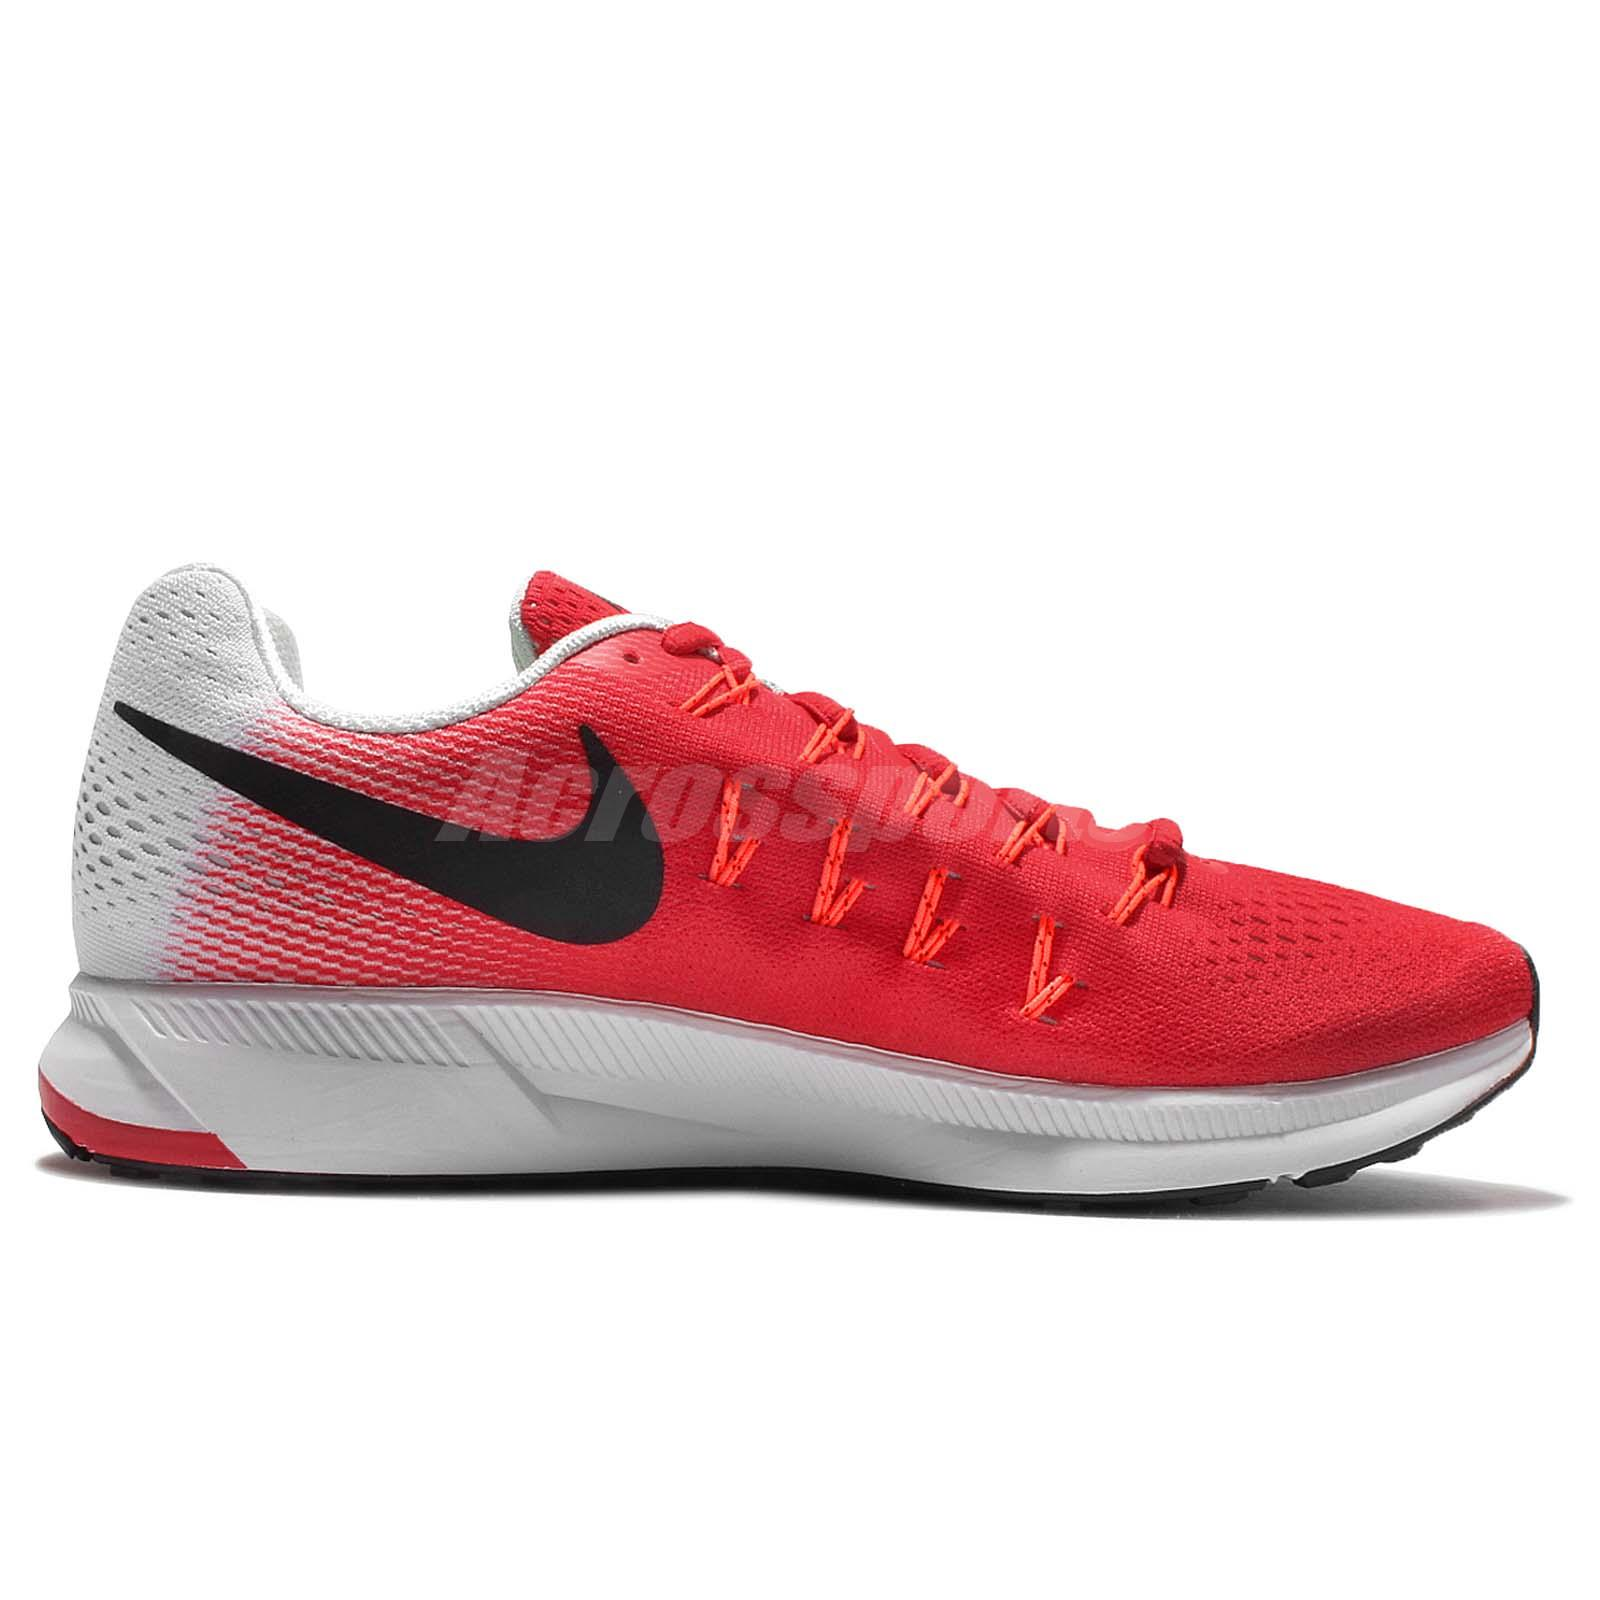 7b891a6c0c64 ... womens Running Shoe BlackPlum Red Nike Air Zoom Pegasus 33 Red Black  Mens Running Trainers Sne. Menu. nike roshe grey pink ...